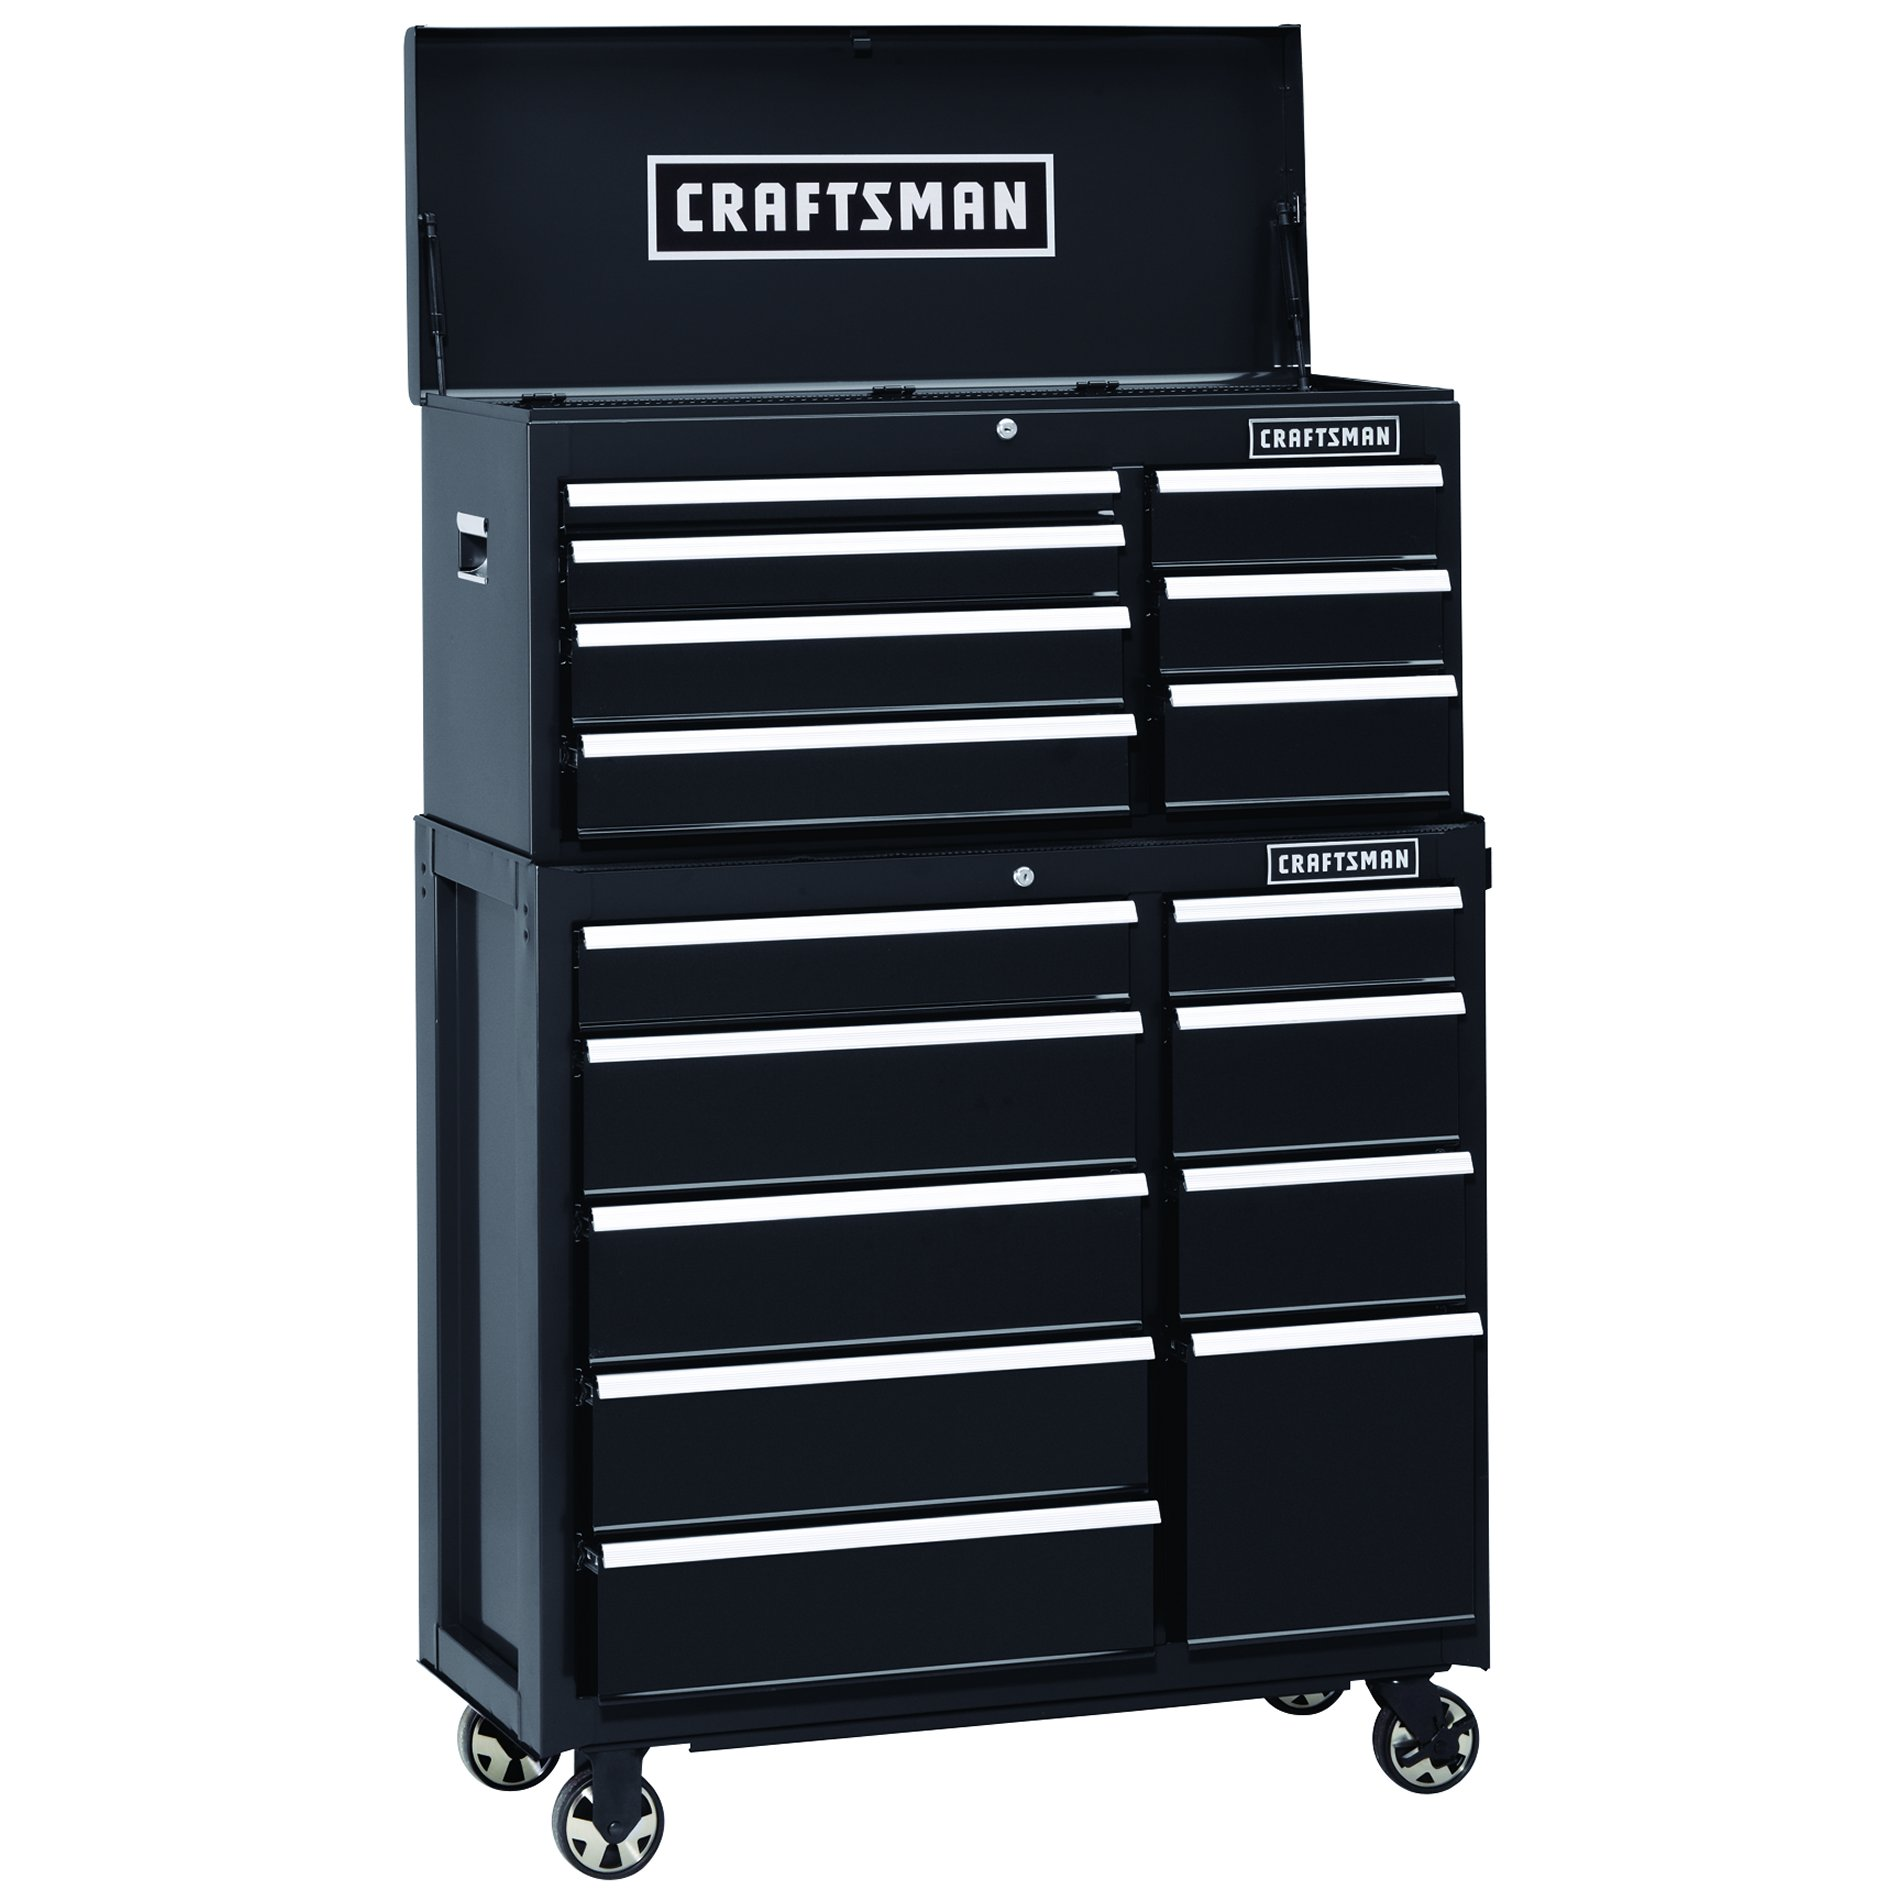 Craftsman 40 in. 9-Drawer Heavy-Duty Ball Bearing Rolling Cabinet- Black